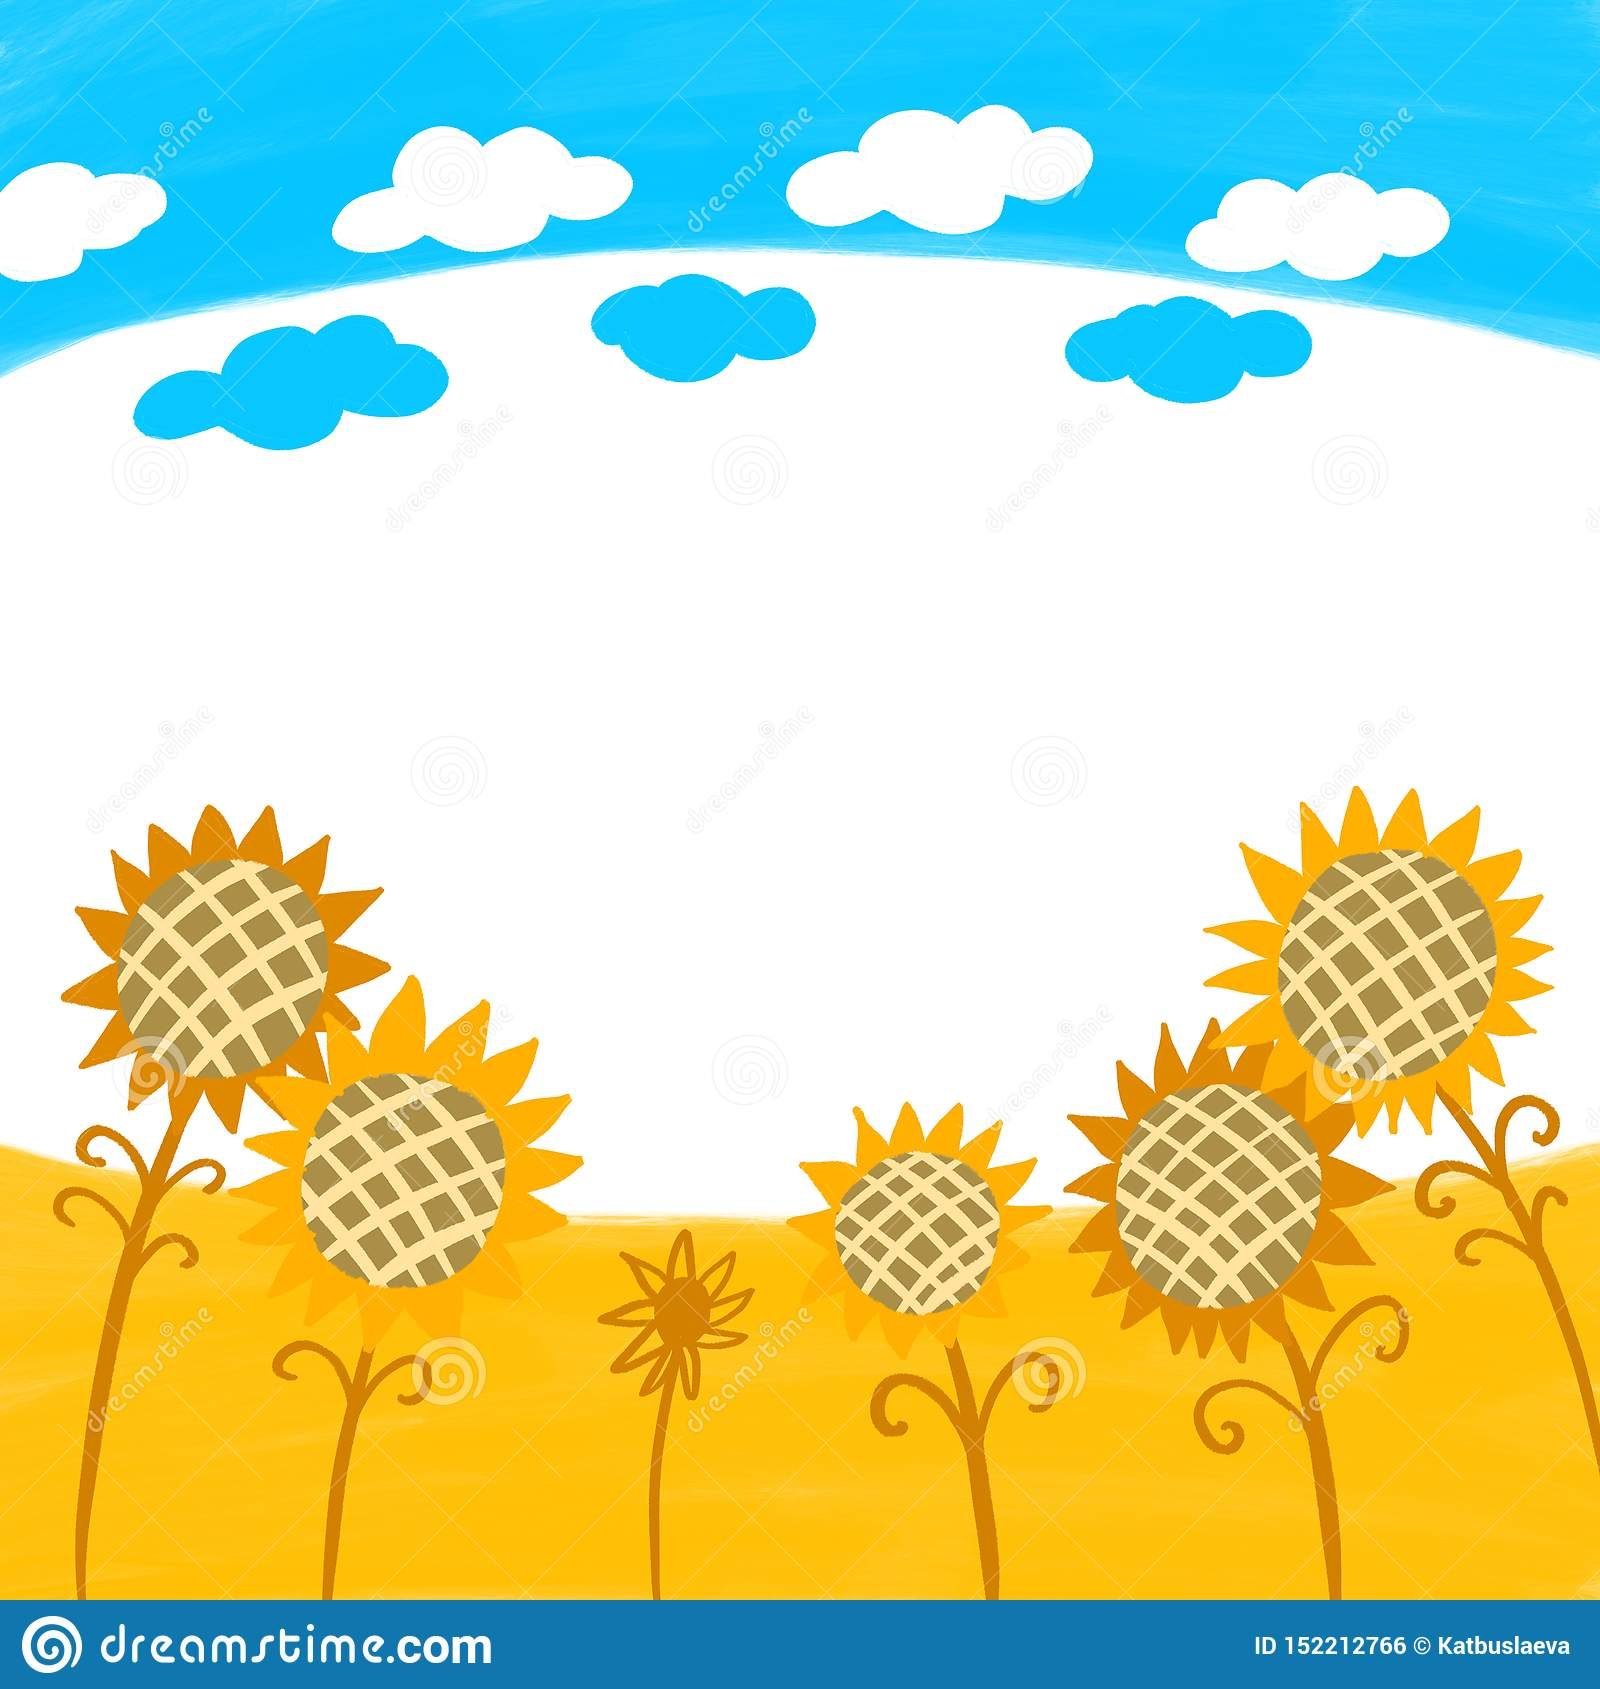 Color Background Drawing In Kids Style Blue Sky With Clouds And Yellow Field With Sunflowers Stock Illustration Illustration Of Wallpaper Harvest 152212766